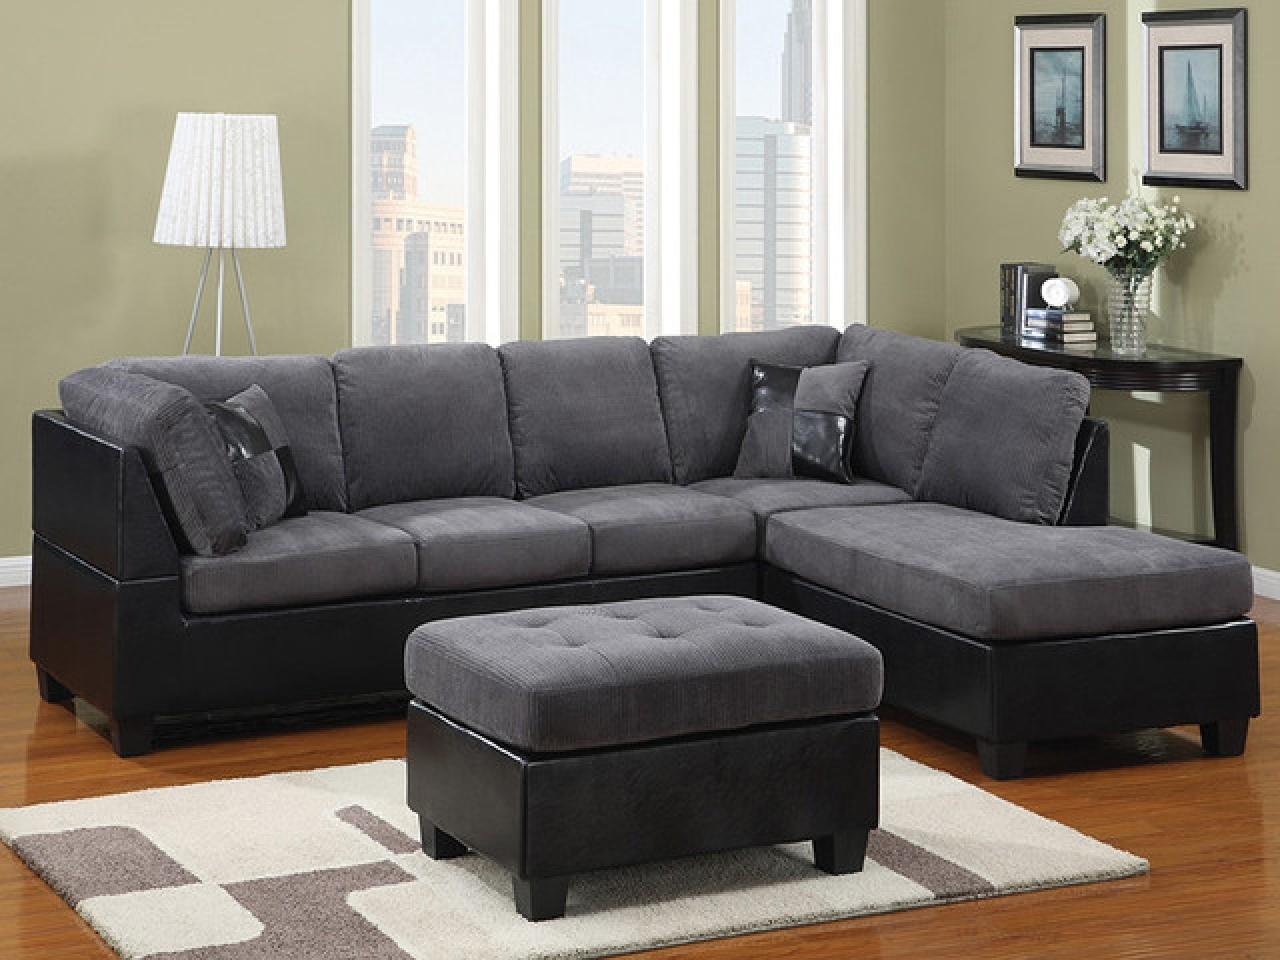 Grey Sectional Sofas With Chaise Intended For Most Up To Date Furniture: Pretty Collection Of Microfiber Sectional Sofa (View 6 of 15)